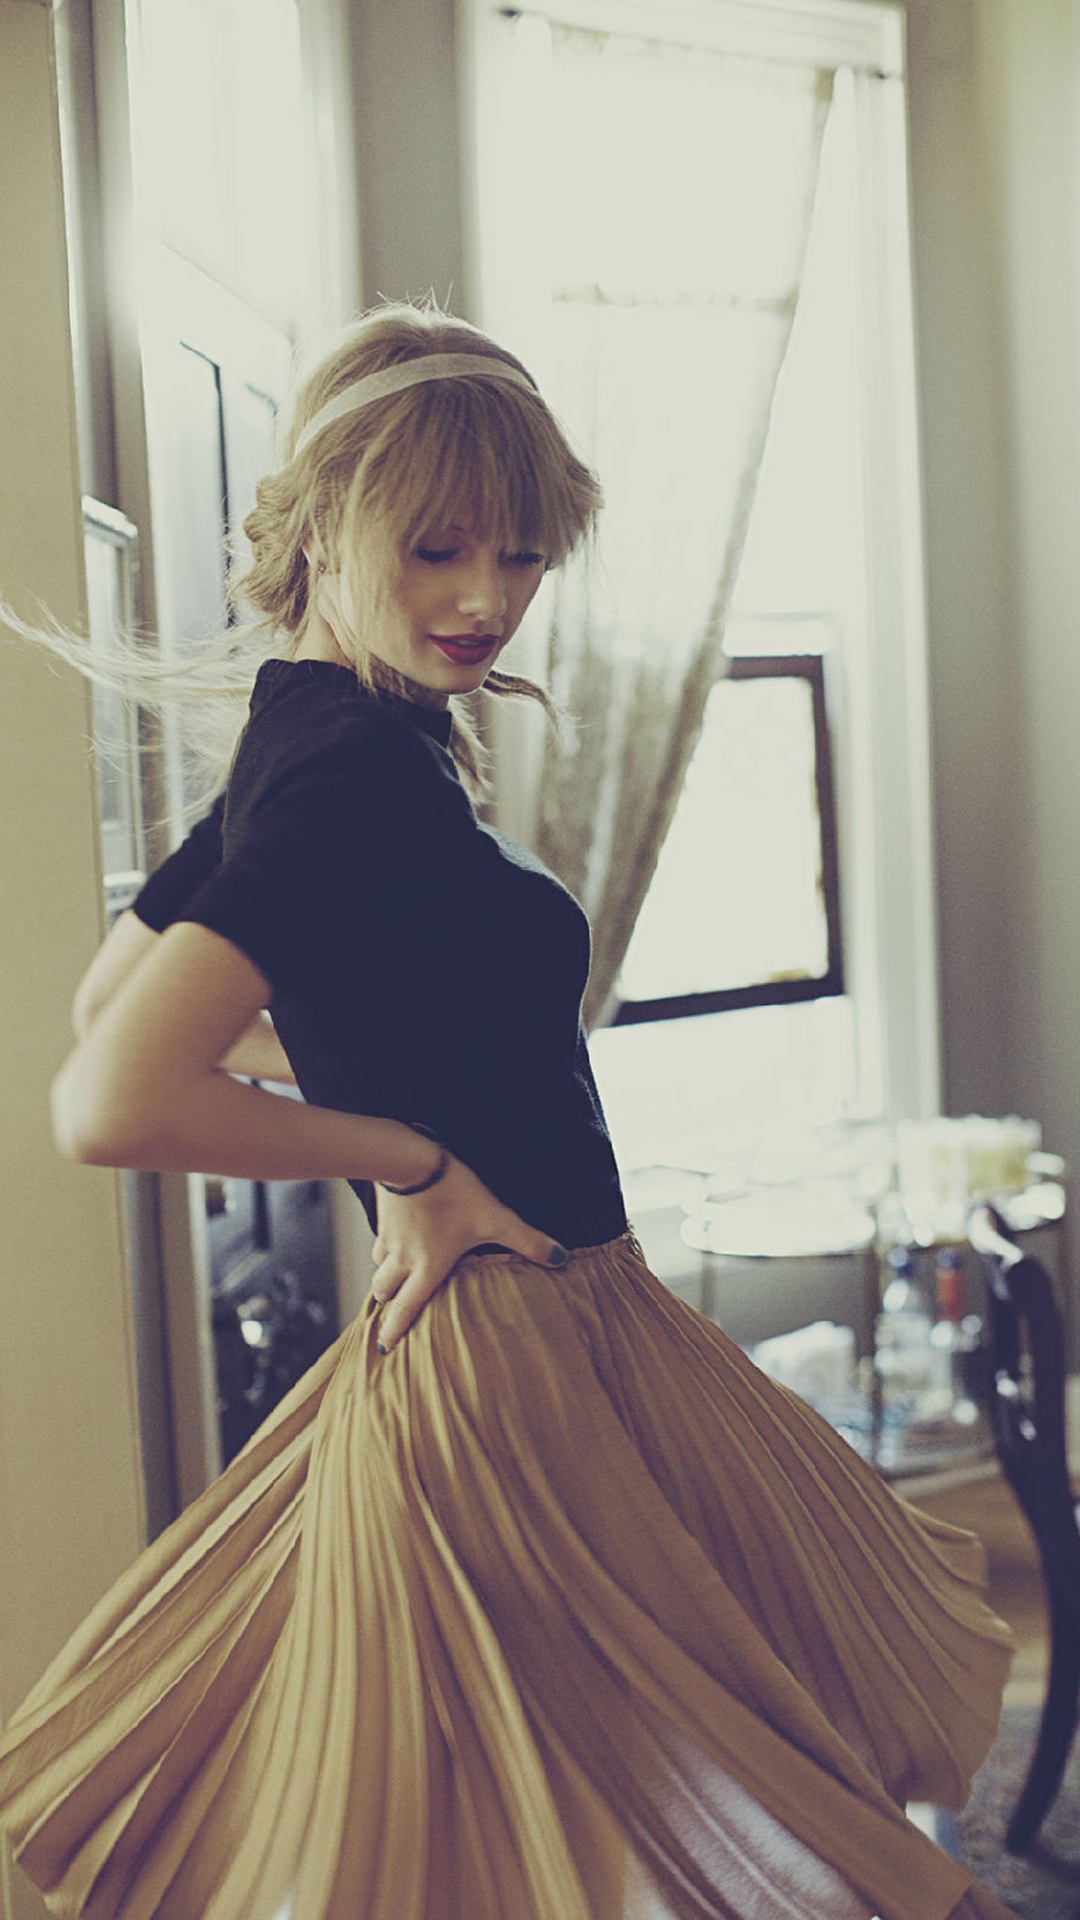 Taylor swift wallpaper for iphone wallpapersafari - Taylor swift wallpaper iphone ...